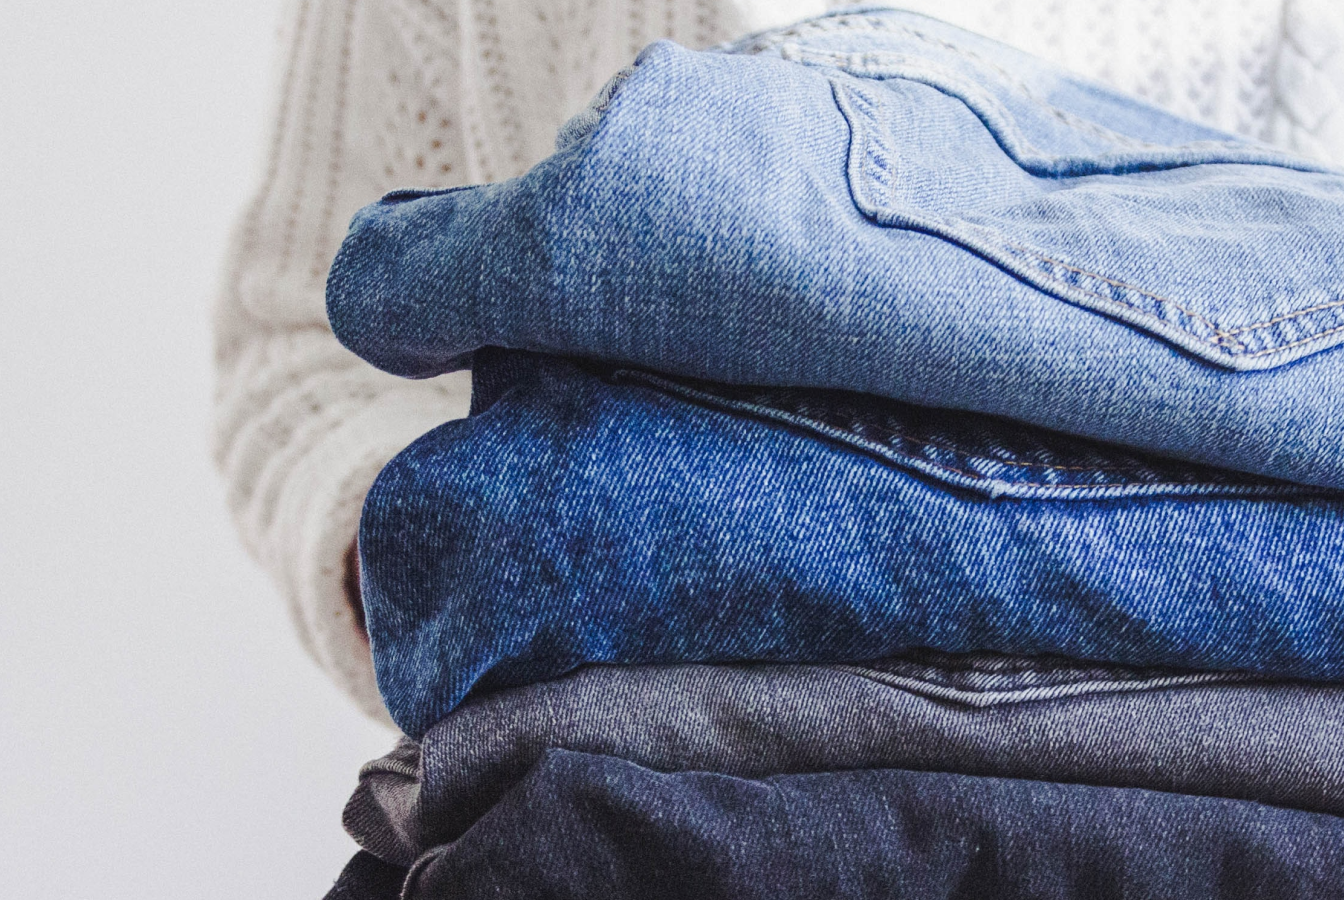 Person carrying stack of folded jeans